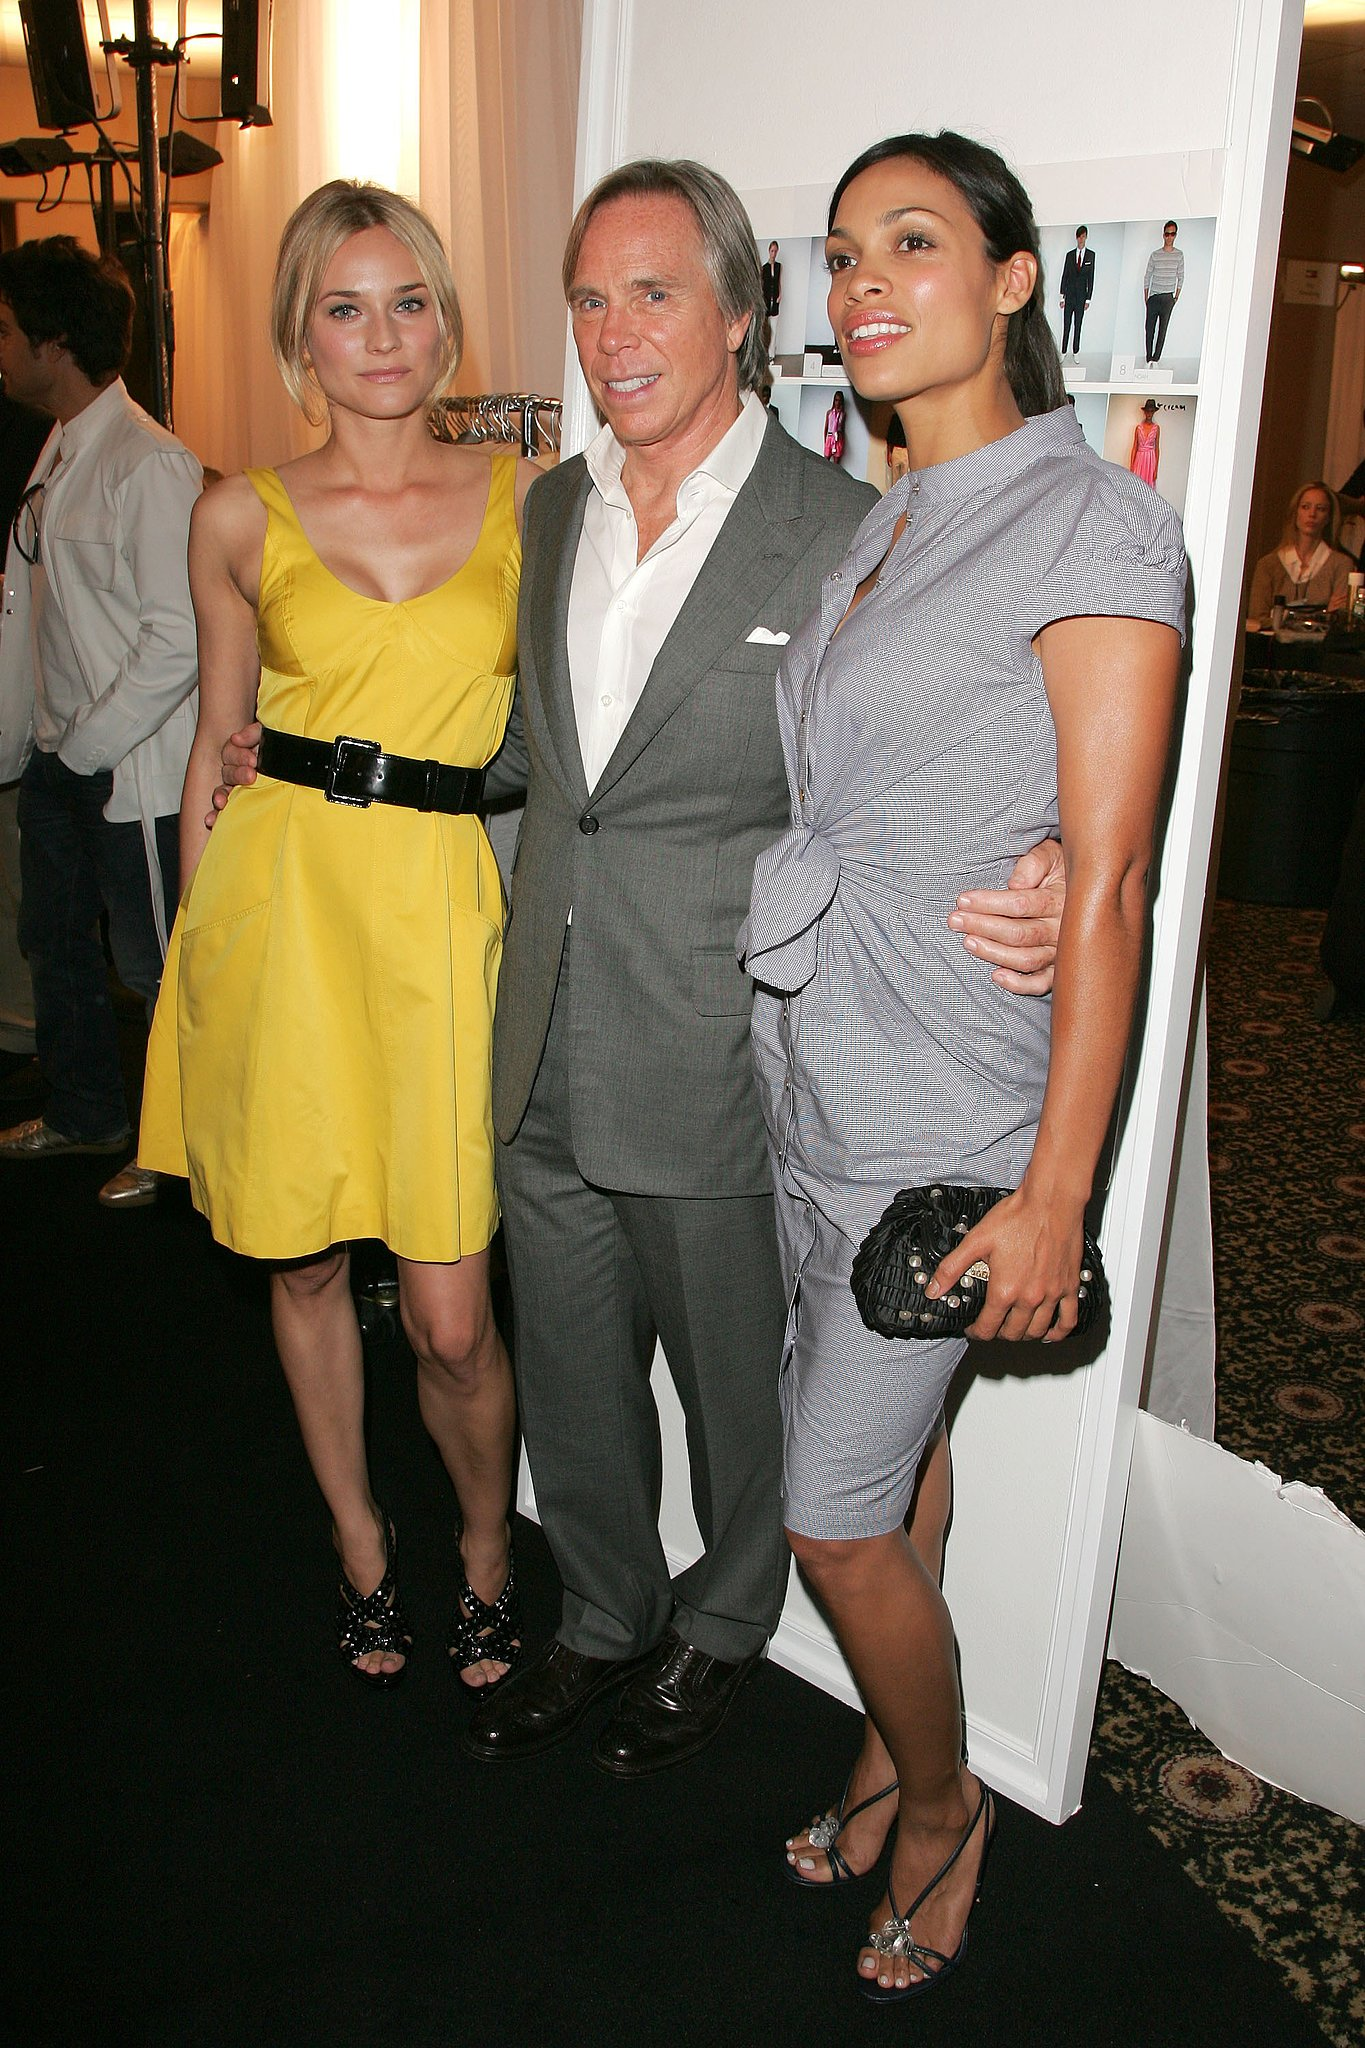 Backstage at Tommy Hilfiger's September 2008 show, Diane Kruger and Rosario Dawson got together with the designer.